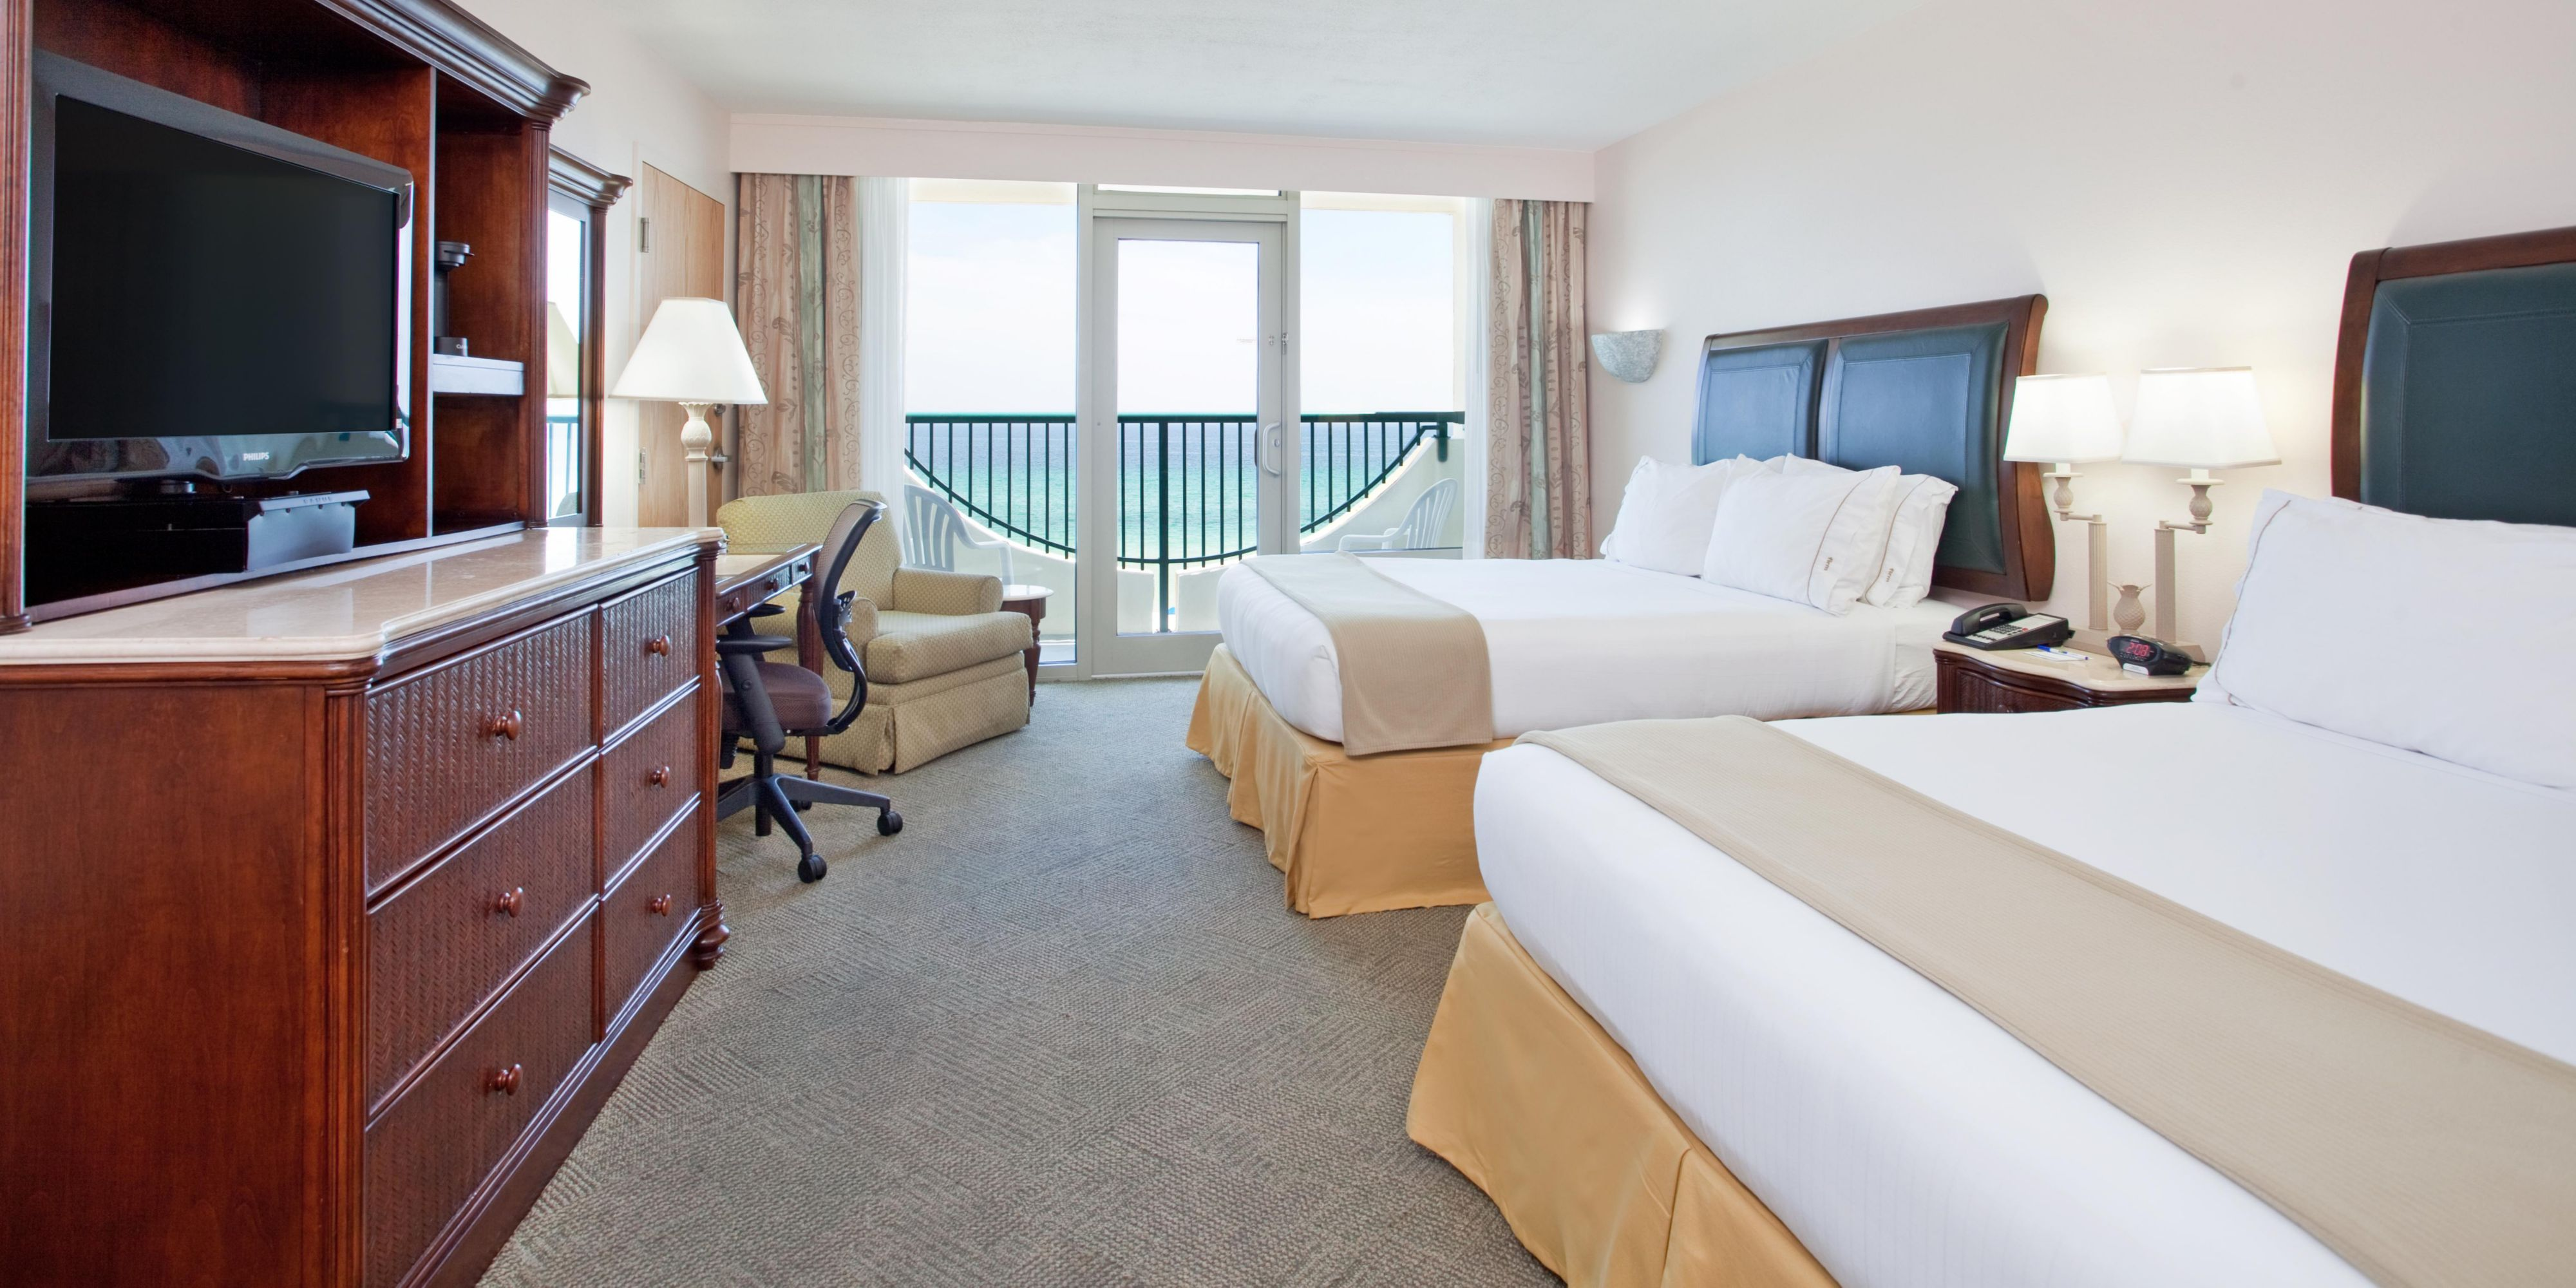 pensacola beach hotel on fort pickens rd - holiday inn express